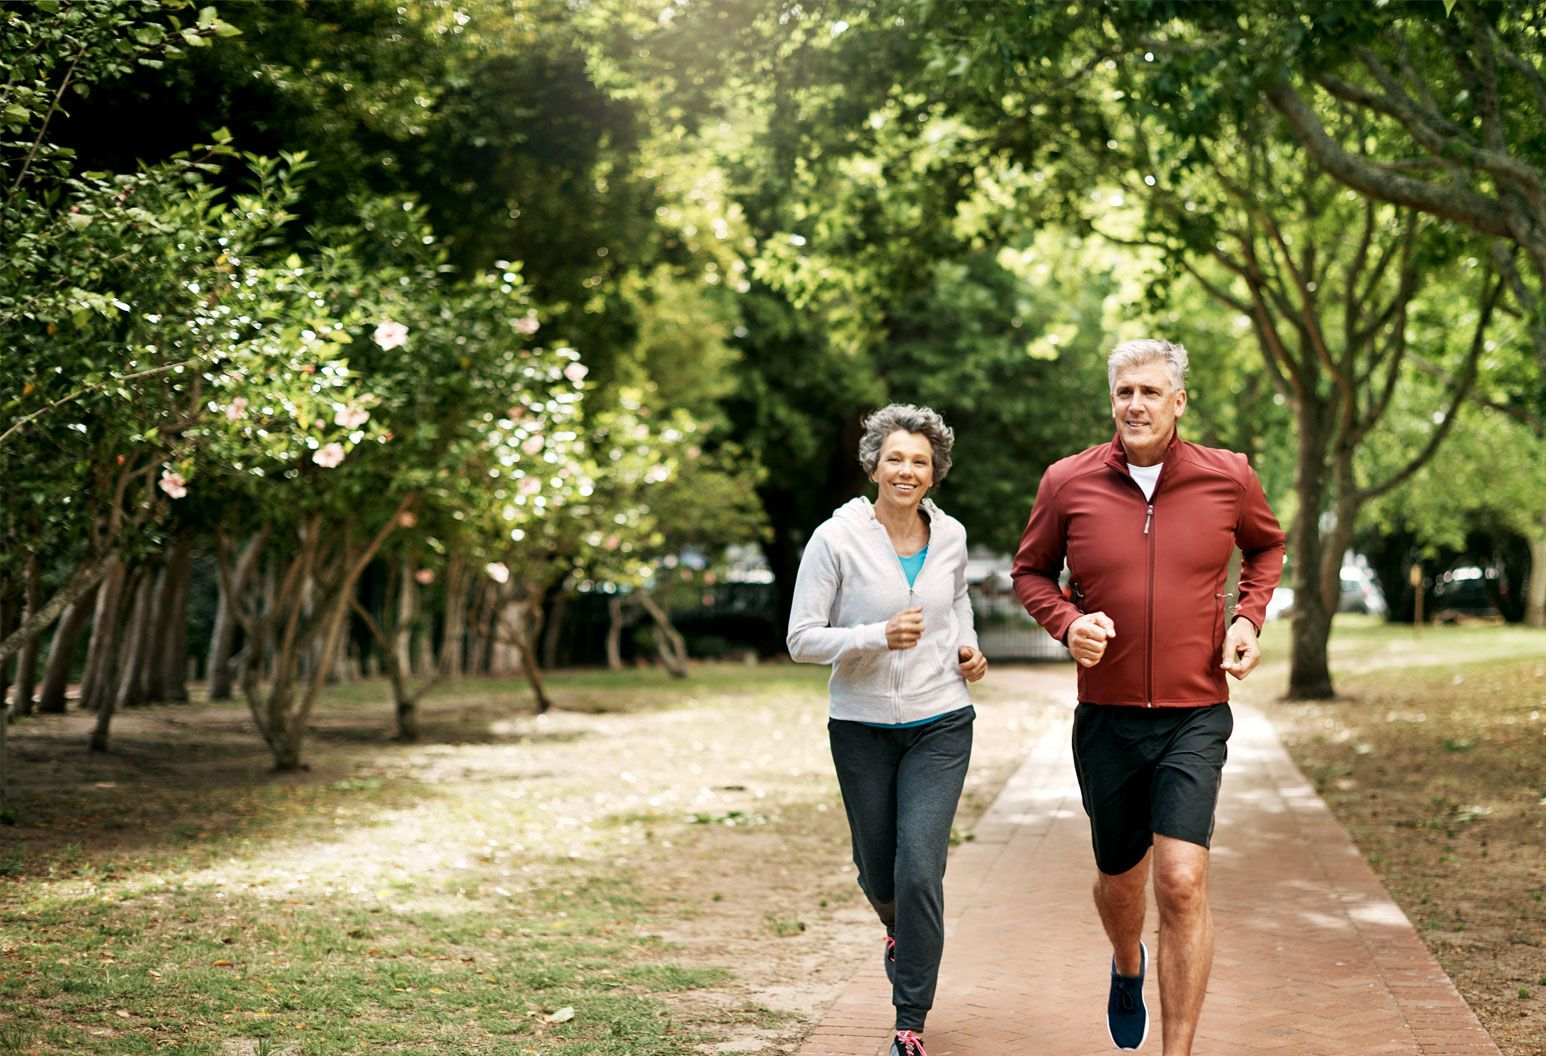 an aged male and female are jogging side by side on a path in the woods on a sunny day.